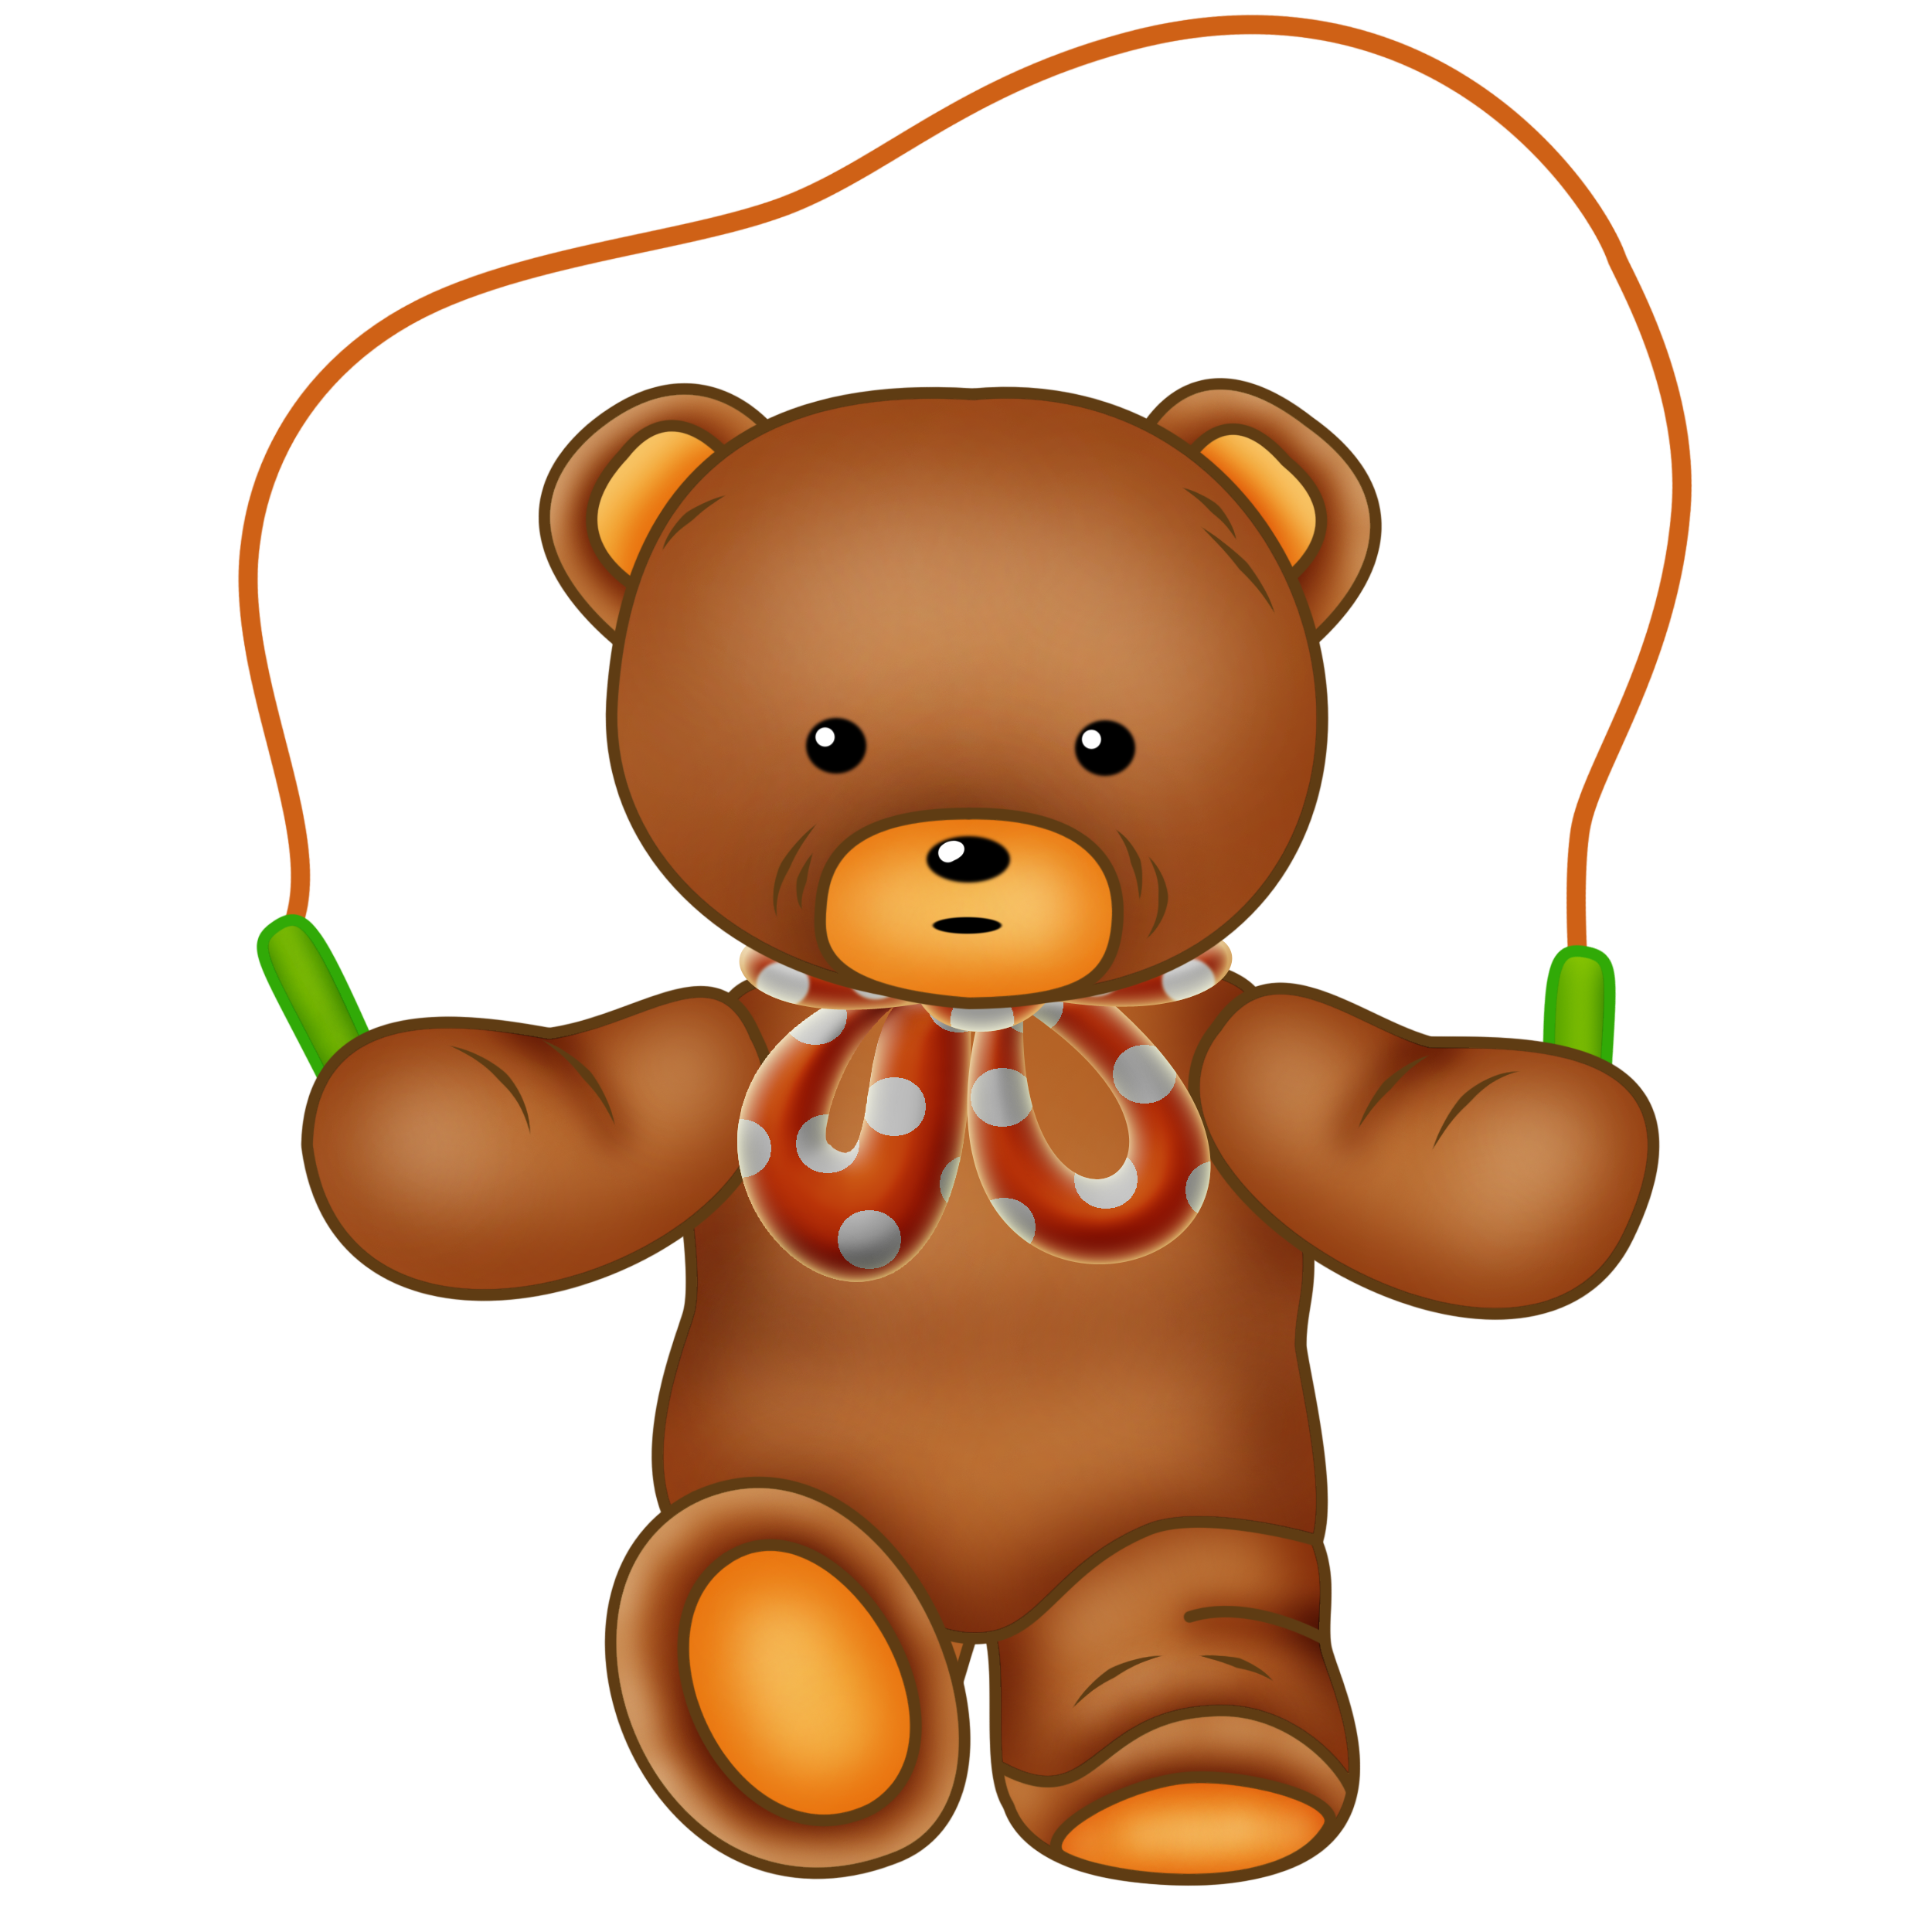 Duckling clipart brown bear. Pin by anik v